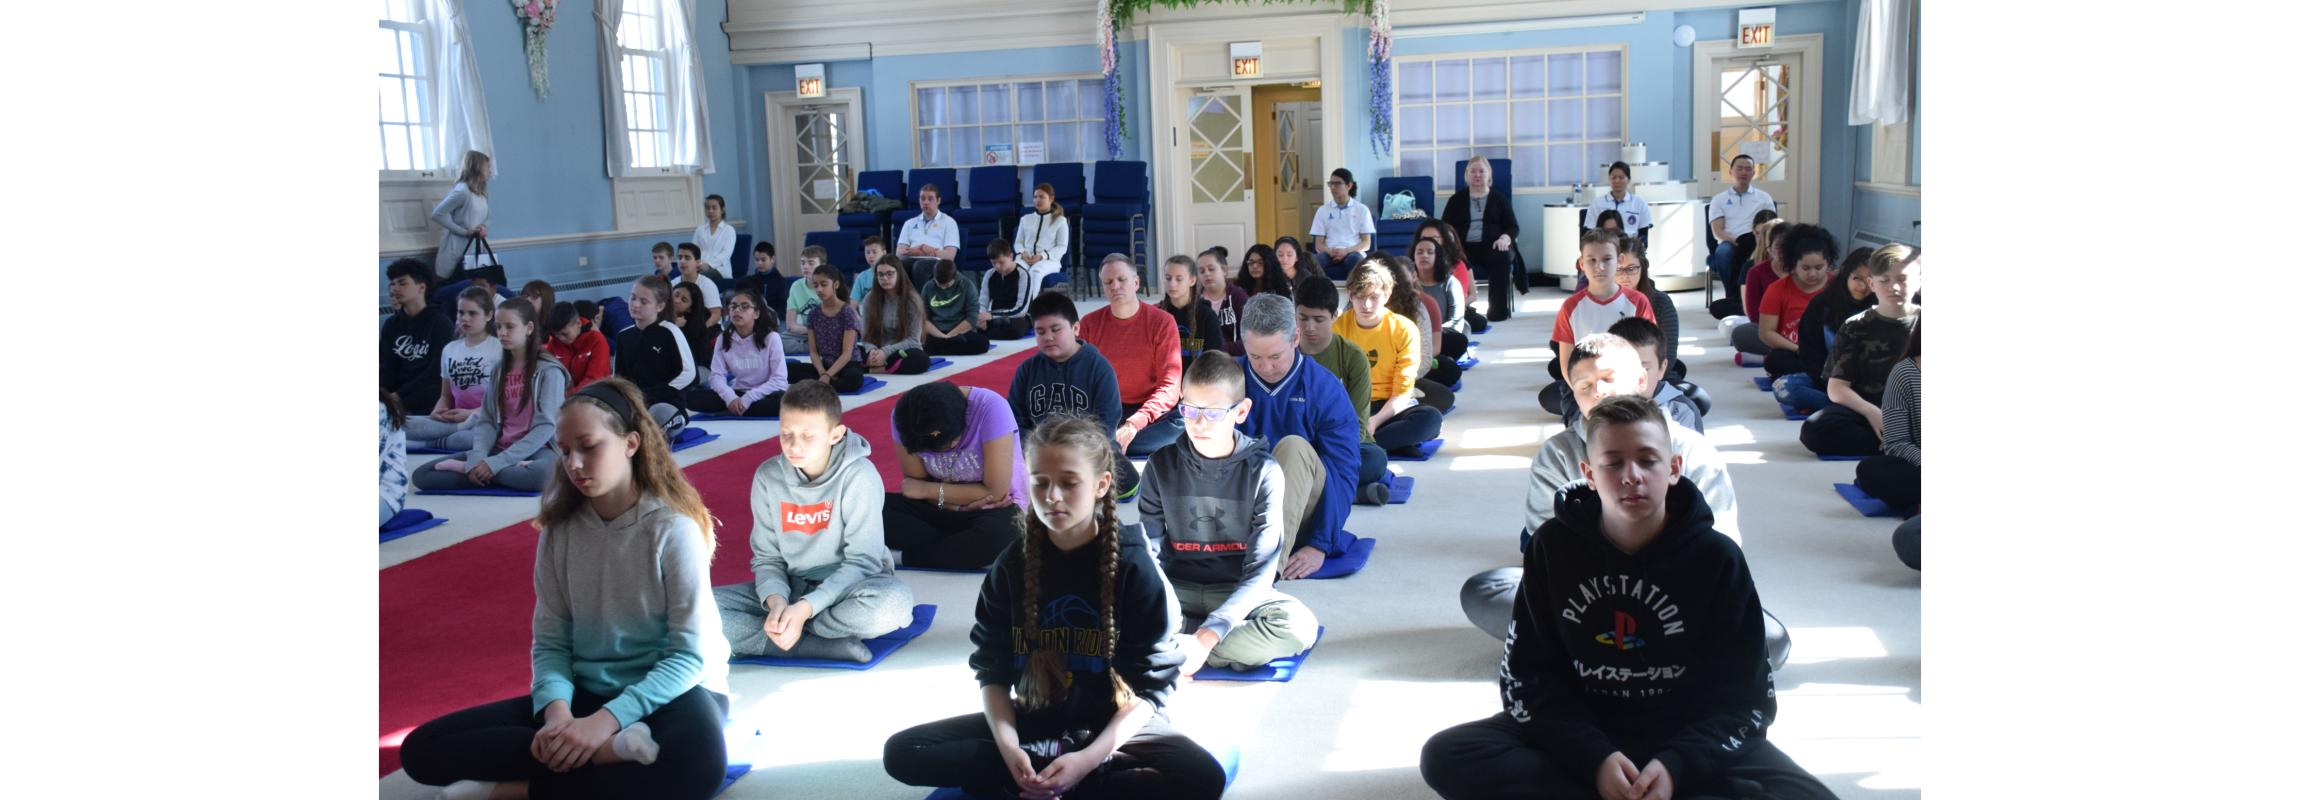 students and teachers meditating